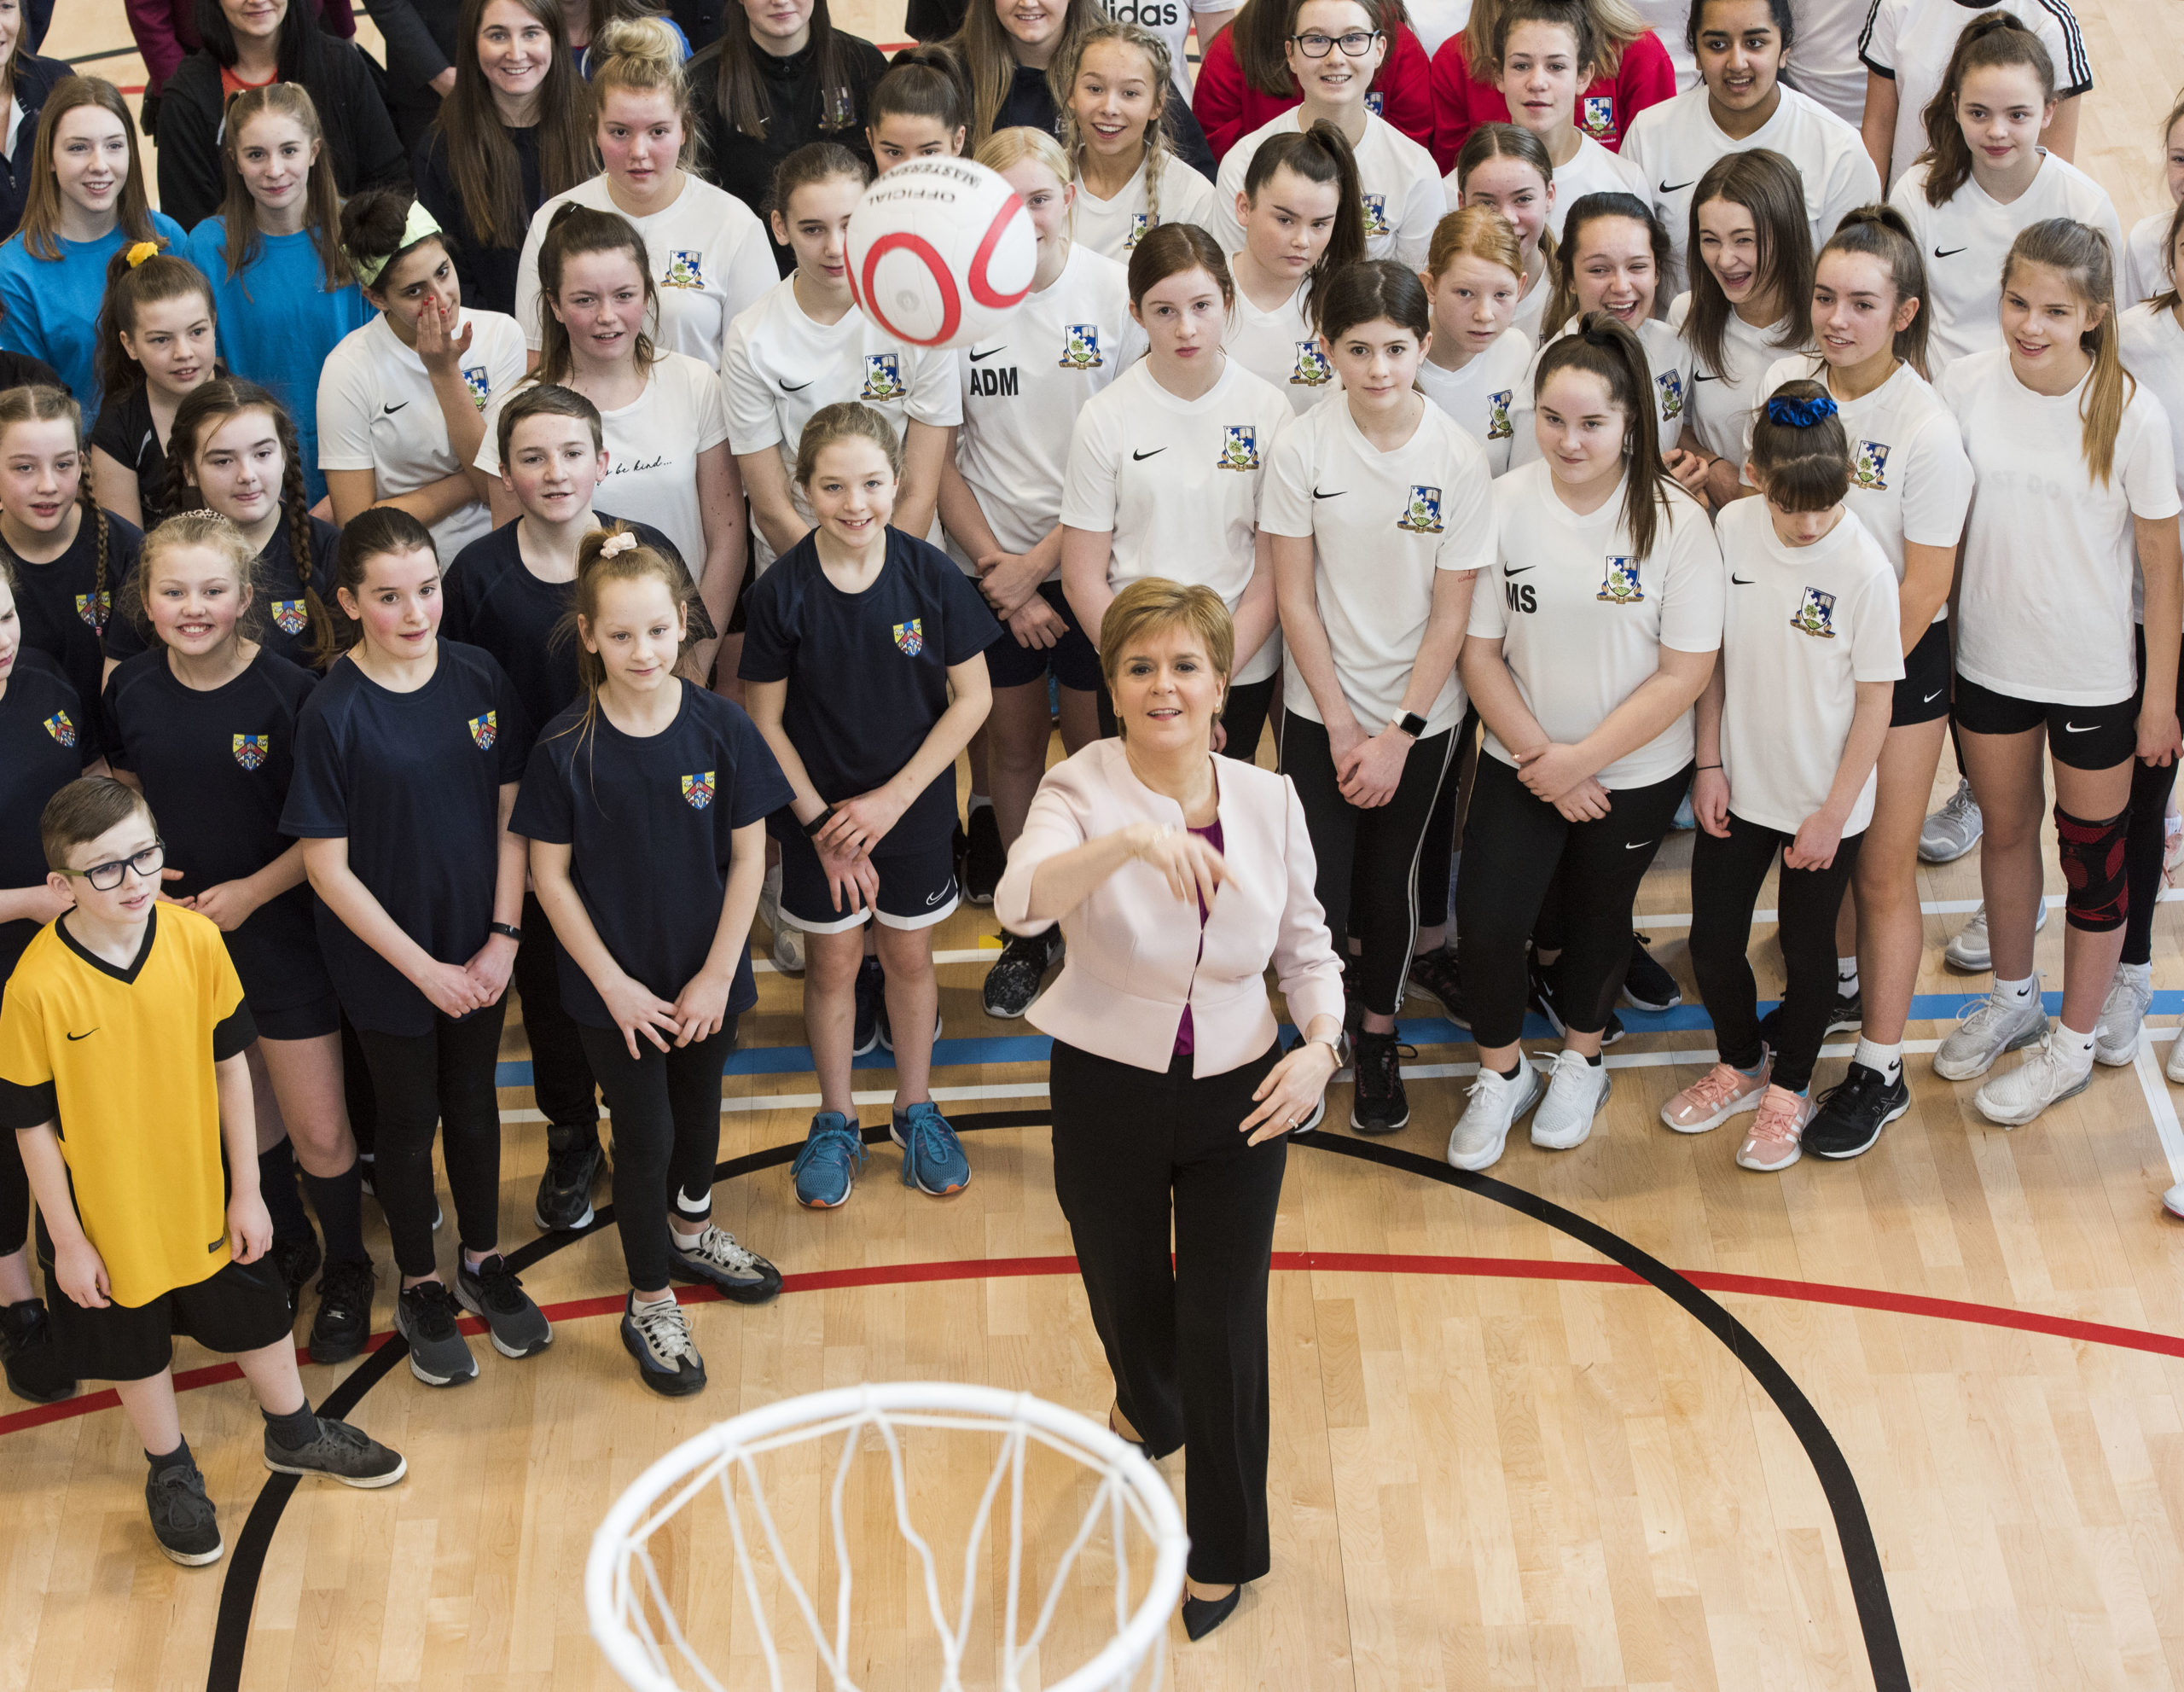 Pic For Alan Richardson Pix-AR.co.uk First Minister Nicola Sturgeon officially opened Dundee's £32 million Regional Performance Centre today as school children and athletes show how its top class facilities will help develop sporting skills for the future. The Caird Park campus has been up and running since the end of last year. It hosts a full size indoor 3G football pitch and outdoor 3G 'rugby sized' pitch suitable for both rugby and football. The pitches are designed to meet World Rugby and FIFA compliance standards and already Glasgow Warriors have had a training camp and both Dundee FC and Dundee United FC have trained at the centre. It also includes eight court multi sports hub building with spectator seating, a strength and conditioning suite and a state-of-the- art-sport science suite. An indoor athletics centre with an 80m running straight provides all-weather training for athletes, while the outdoor athletics track was resurfaced and a covered spectator area added. The velodrome has also been refreshed with a new area of hardstanding provided for competition, with upgraded floodlighting.